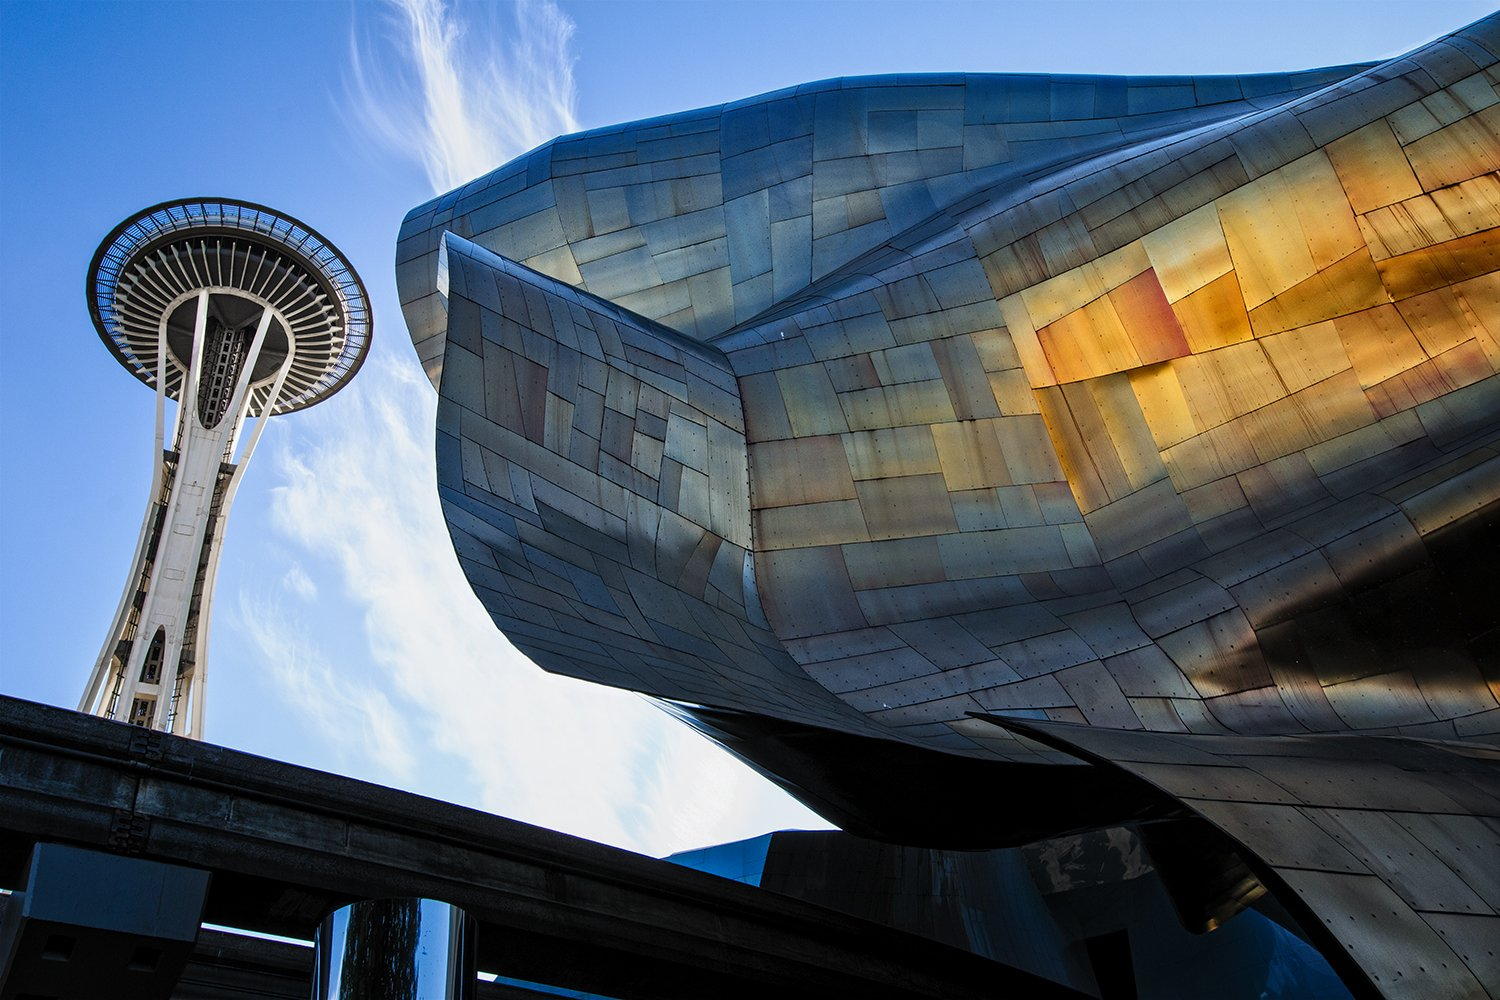 architecture, landmark, space needle, Seattle, buildings, copper, metal